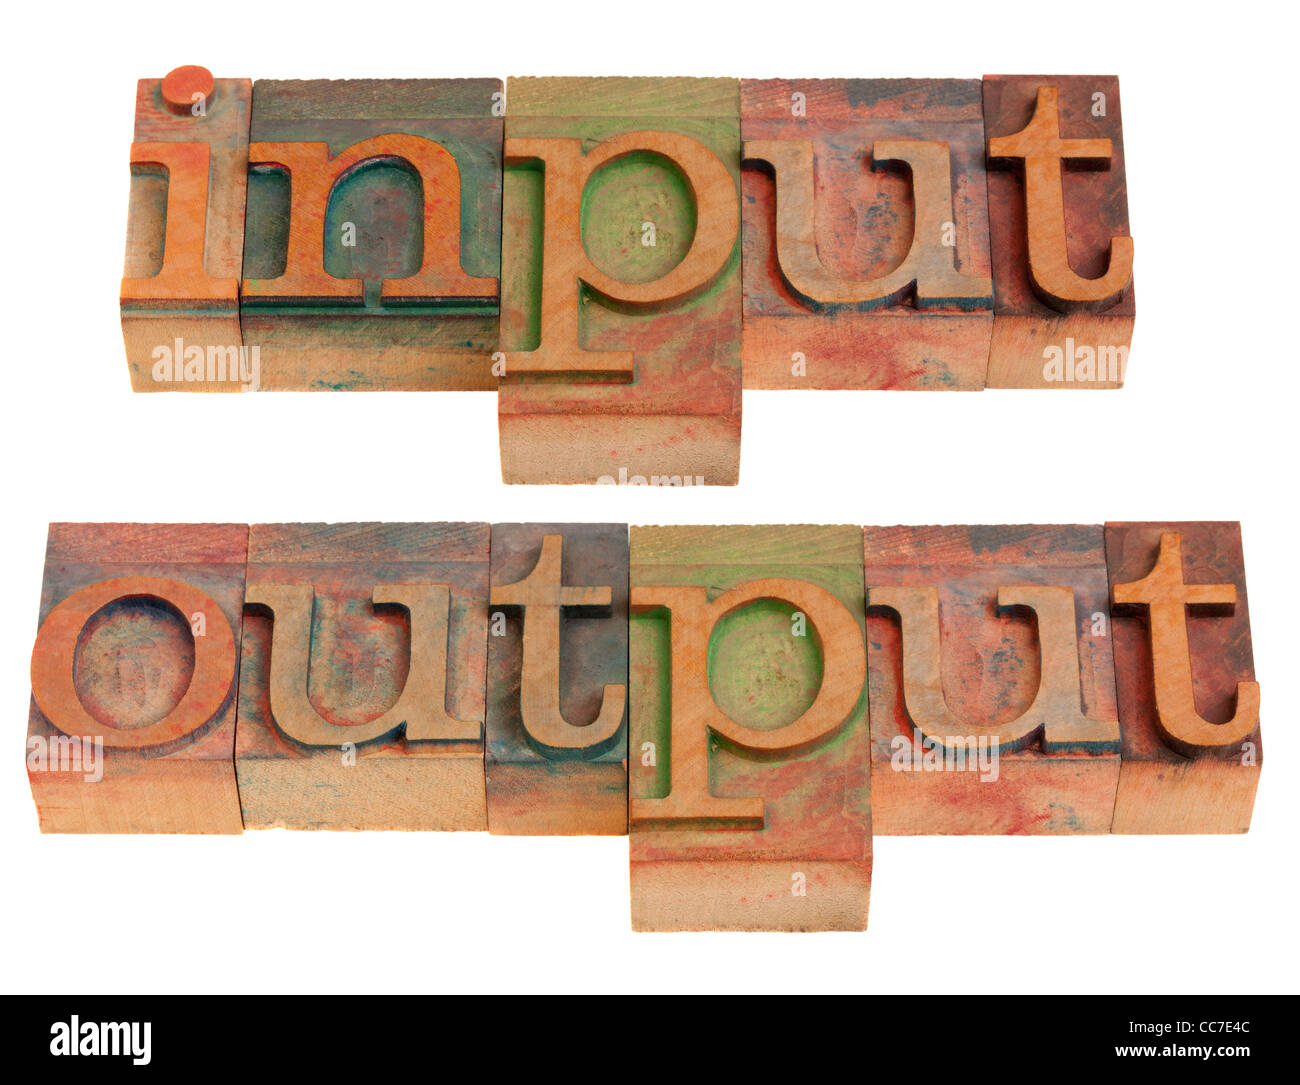 input and output words in vintage wooden letterpress printing blocks isolated on white - Stock Image